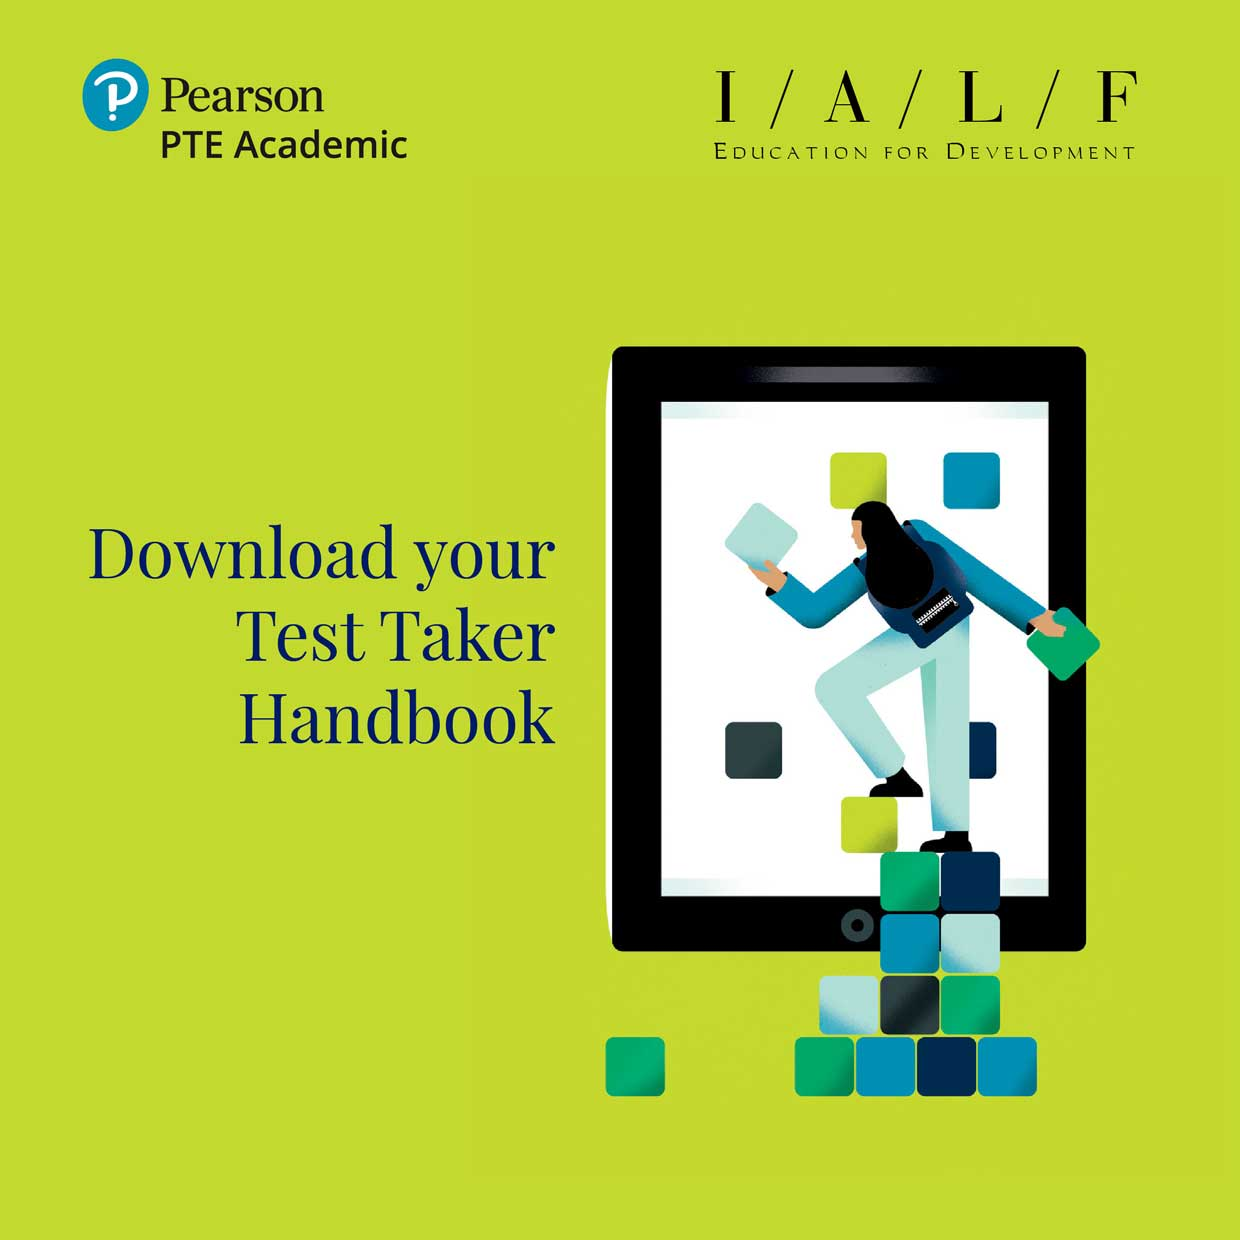 download-pte-test-handbook